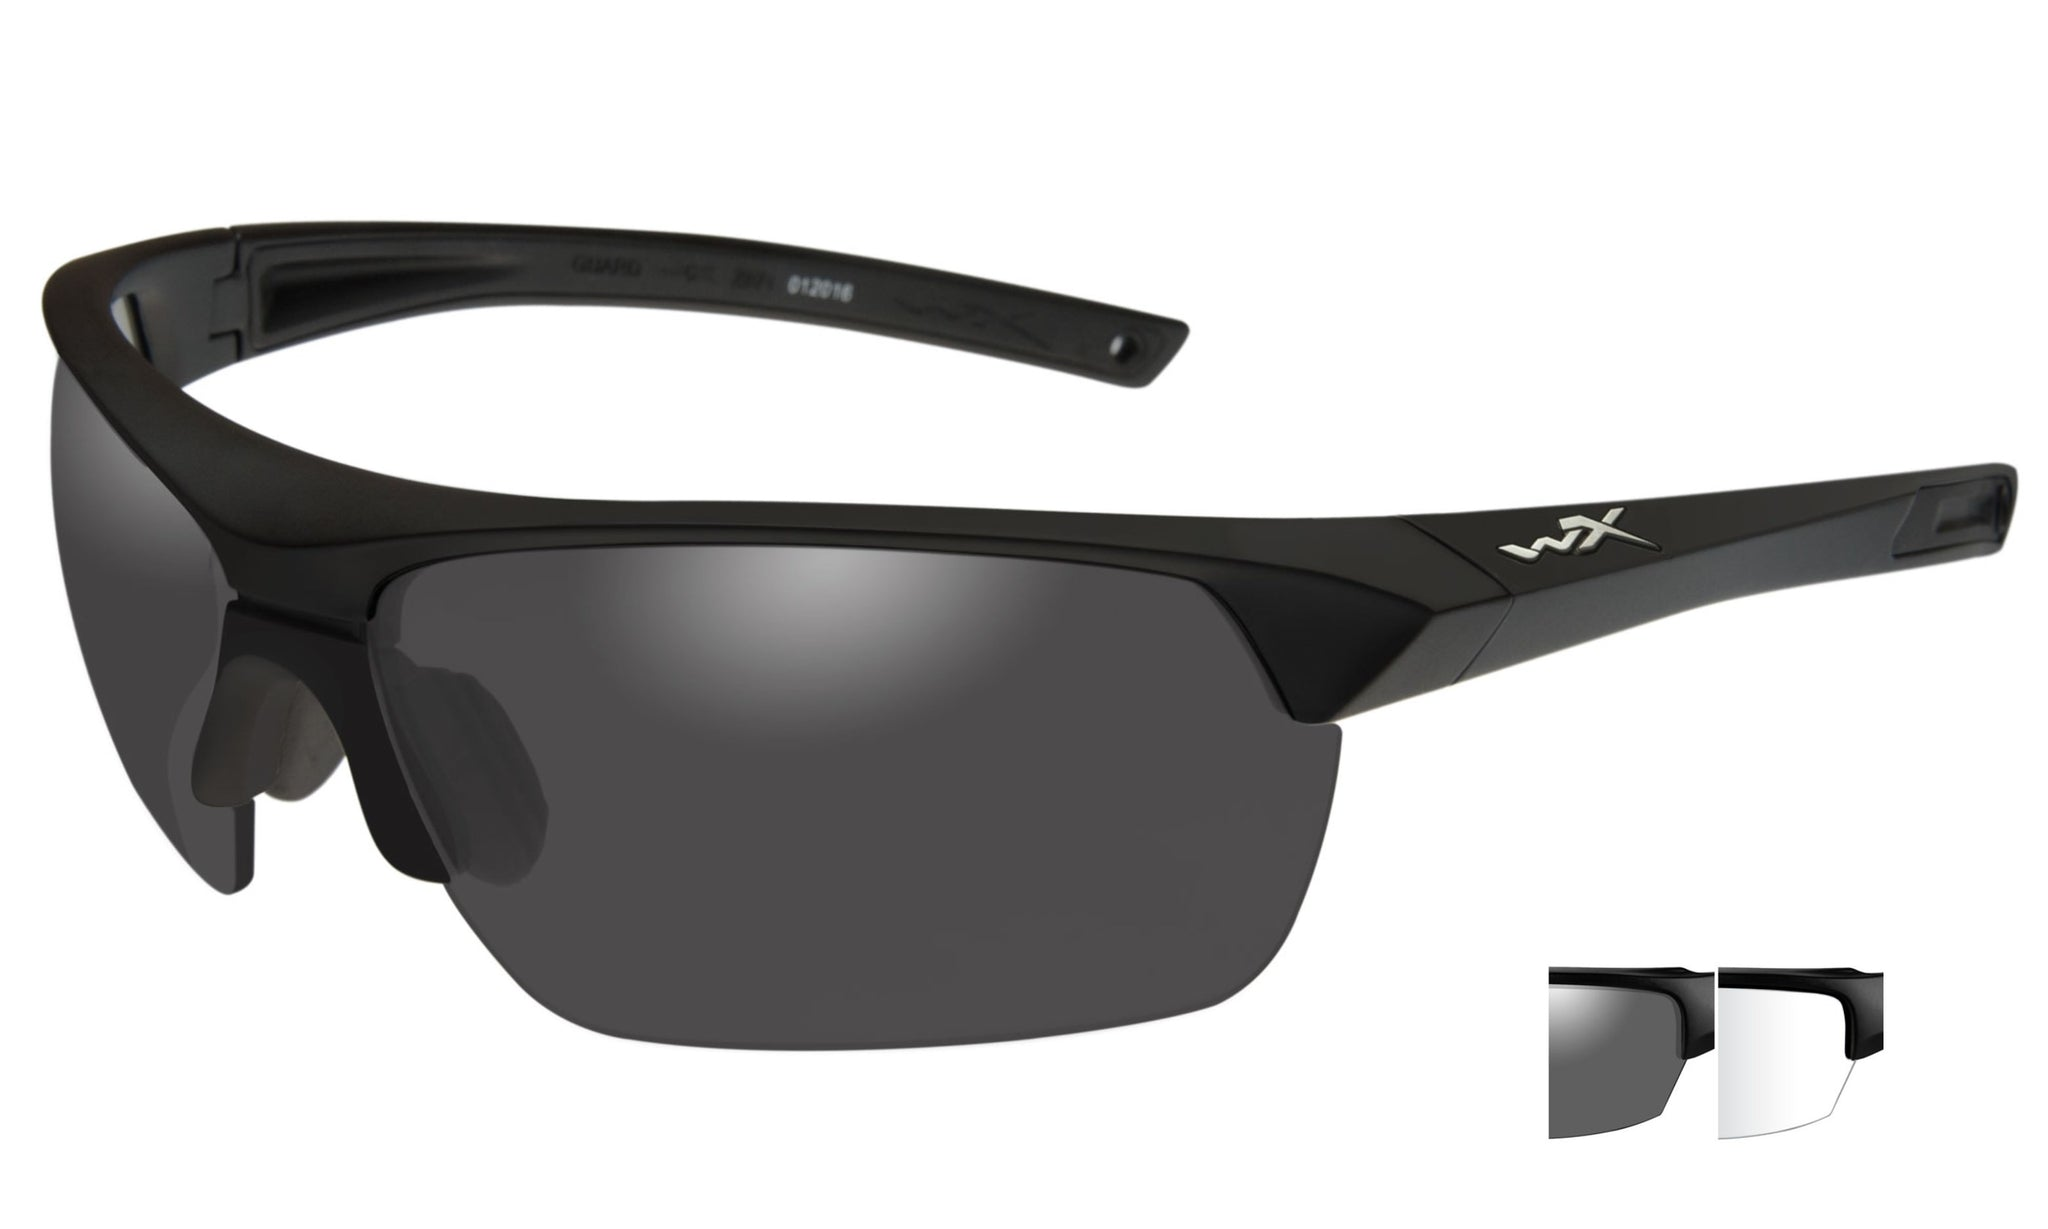 WILEY X SUNGLASSES - GUARD ADVANCED  (2 OPTIONS)